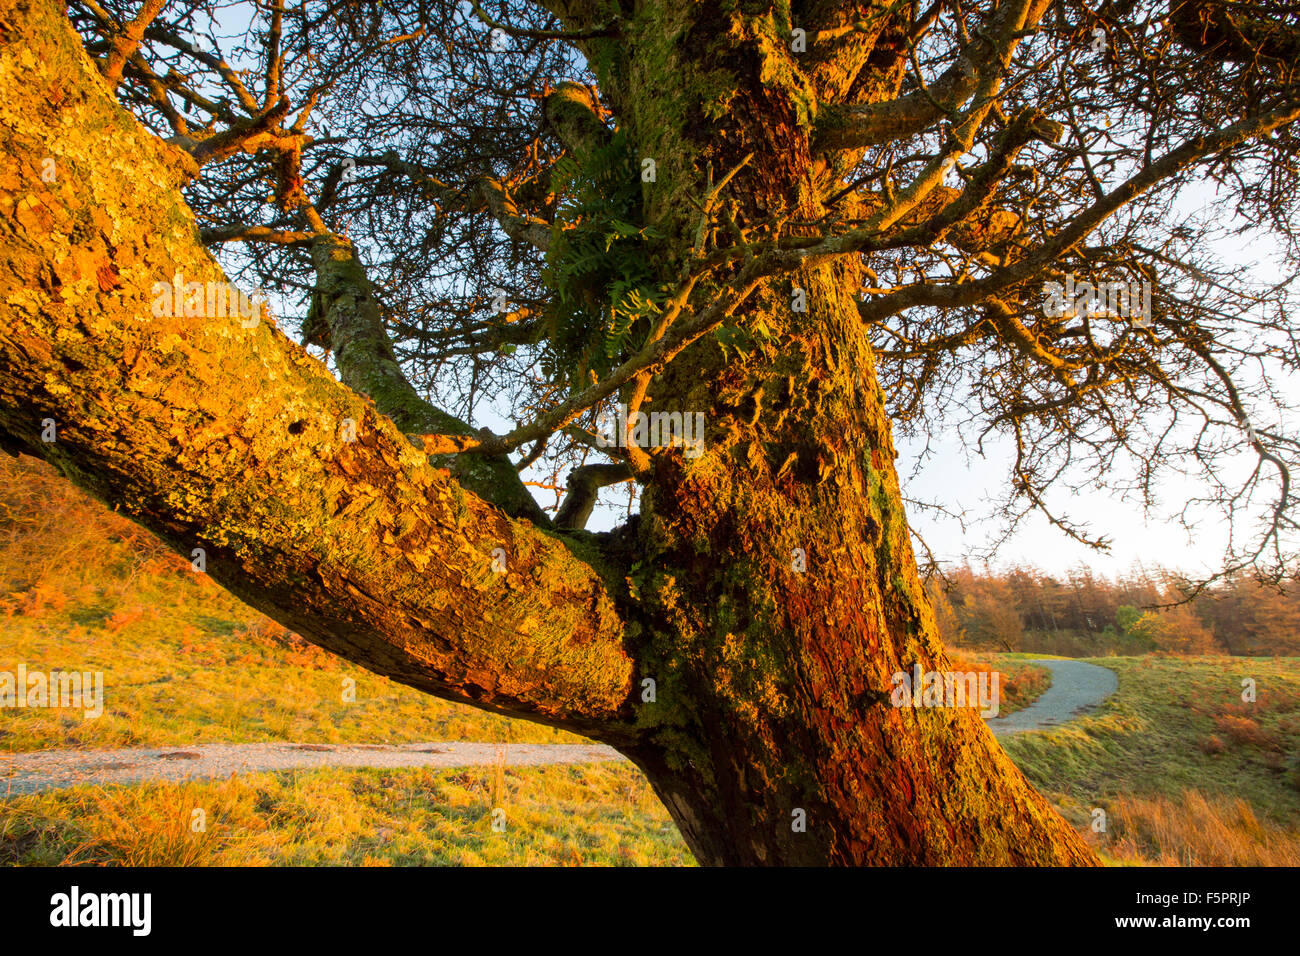 A Hawthorn Tree near Hawkshead in the Lake District in the Autumn time at sunset. - Stock Image